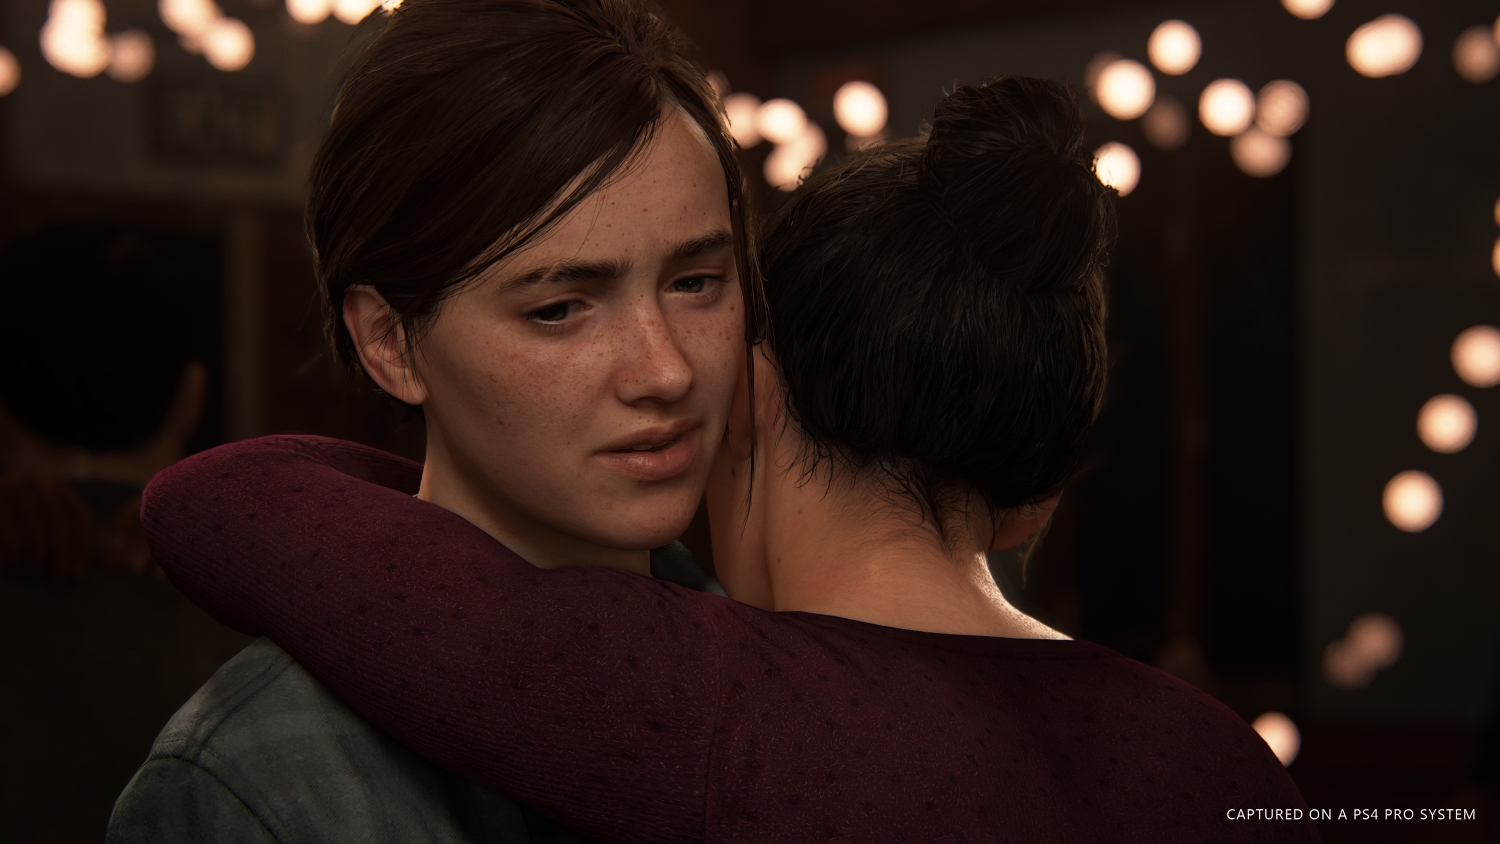 The Last Of Us Part II - are we happy with a bleakness?